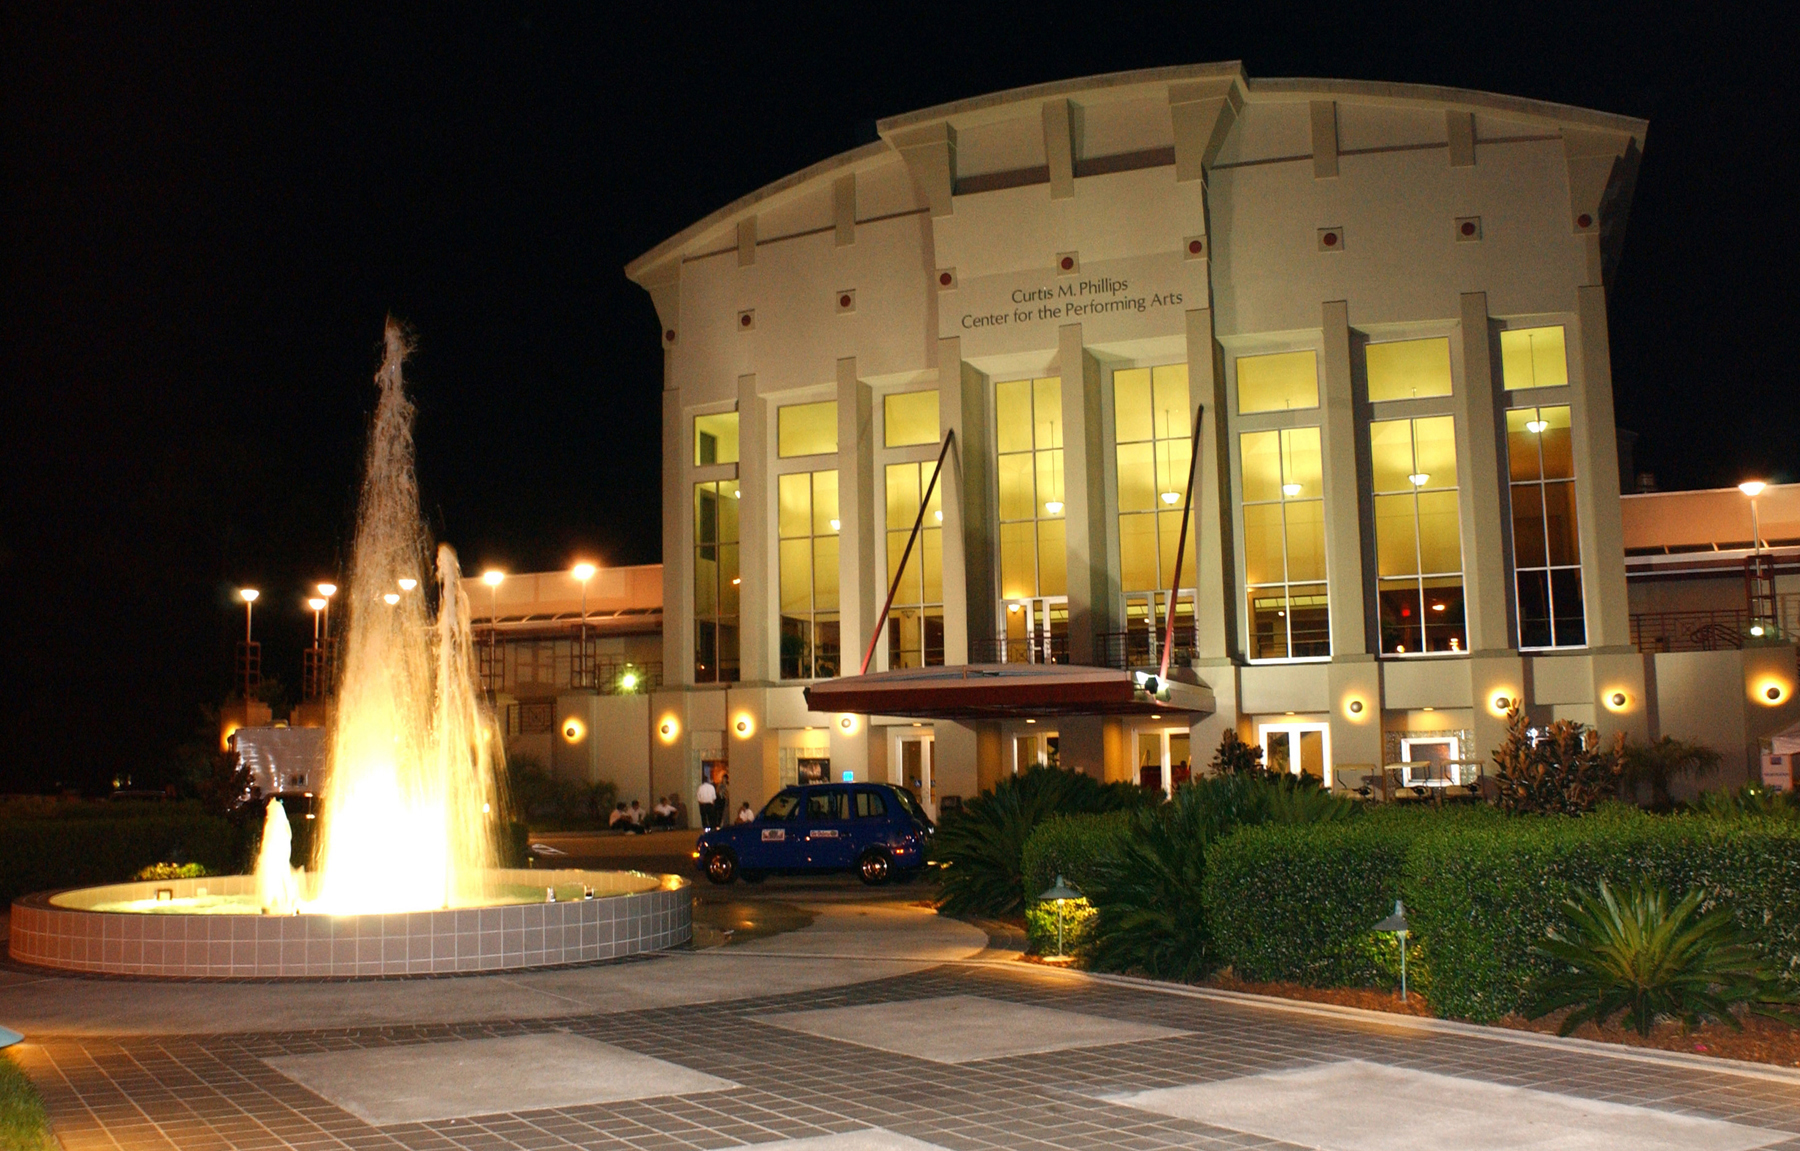 The Phillips Center for Performing Arts